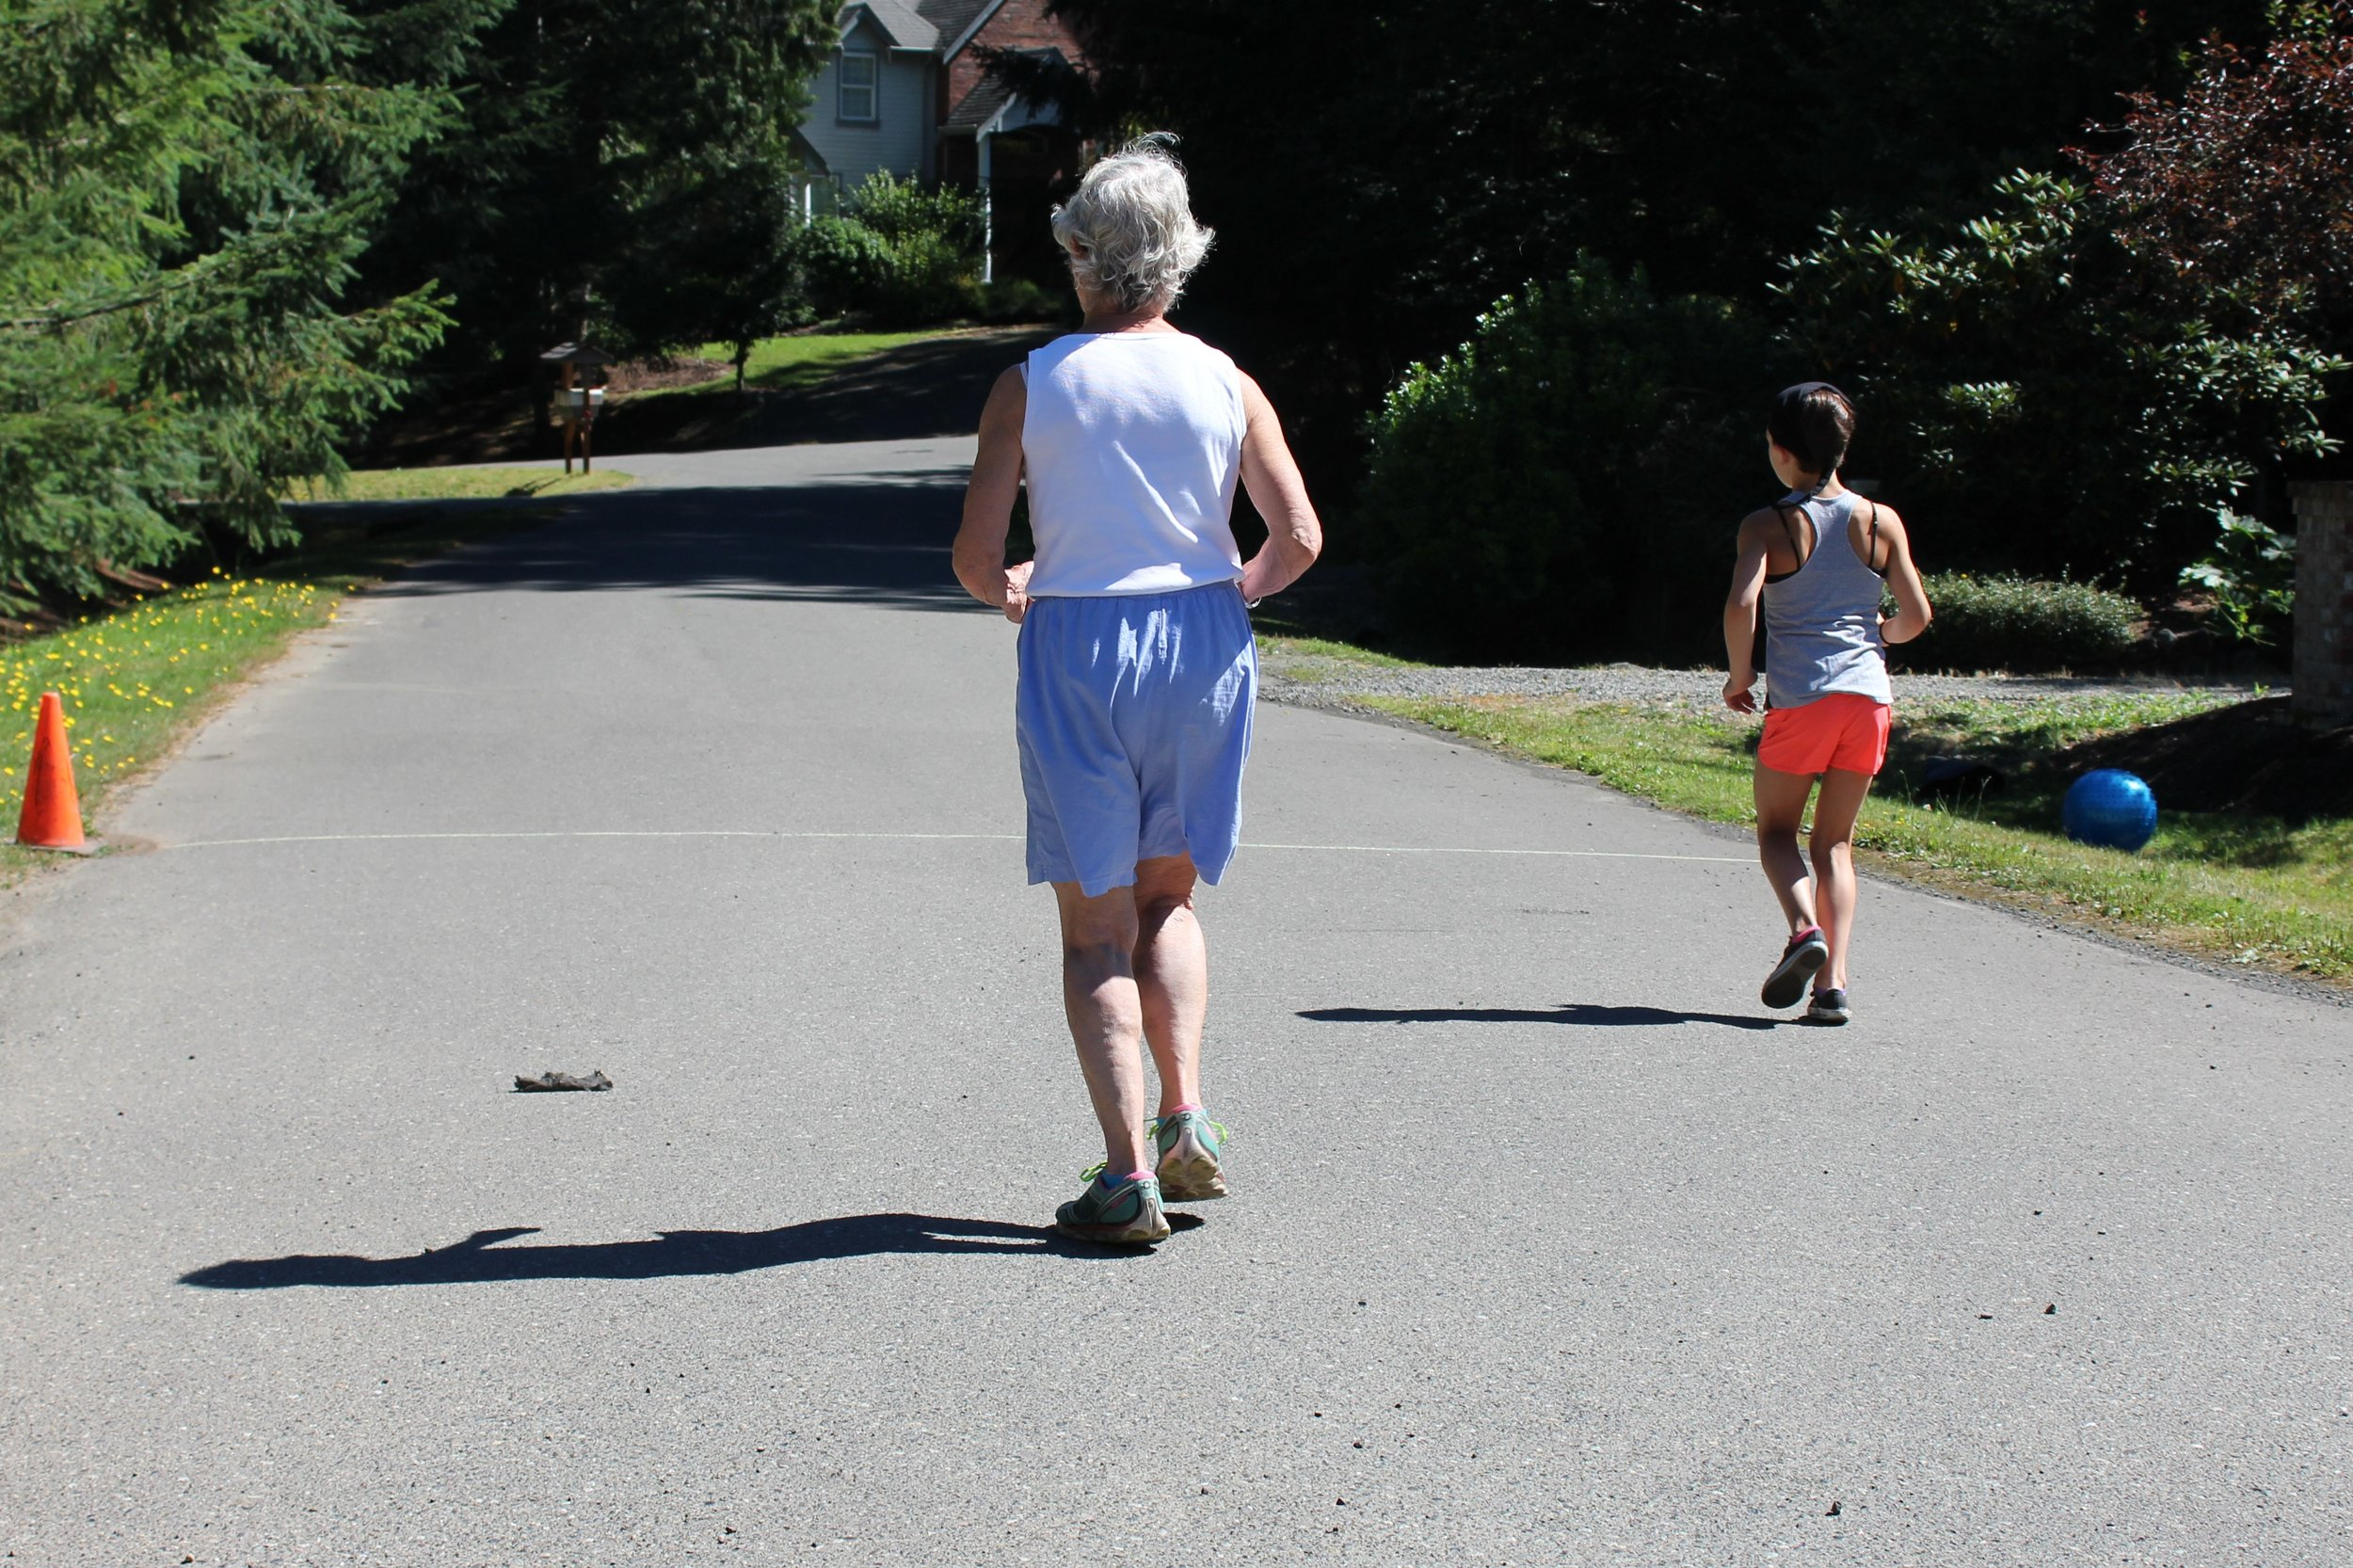 Grandmother and granddaughter pound the pavement together